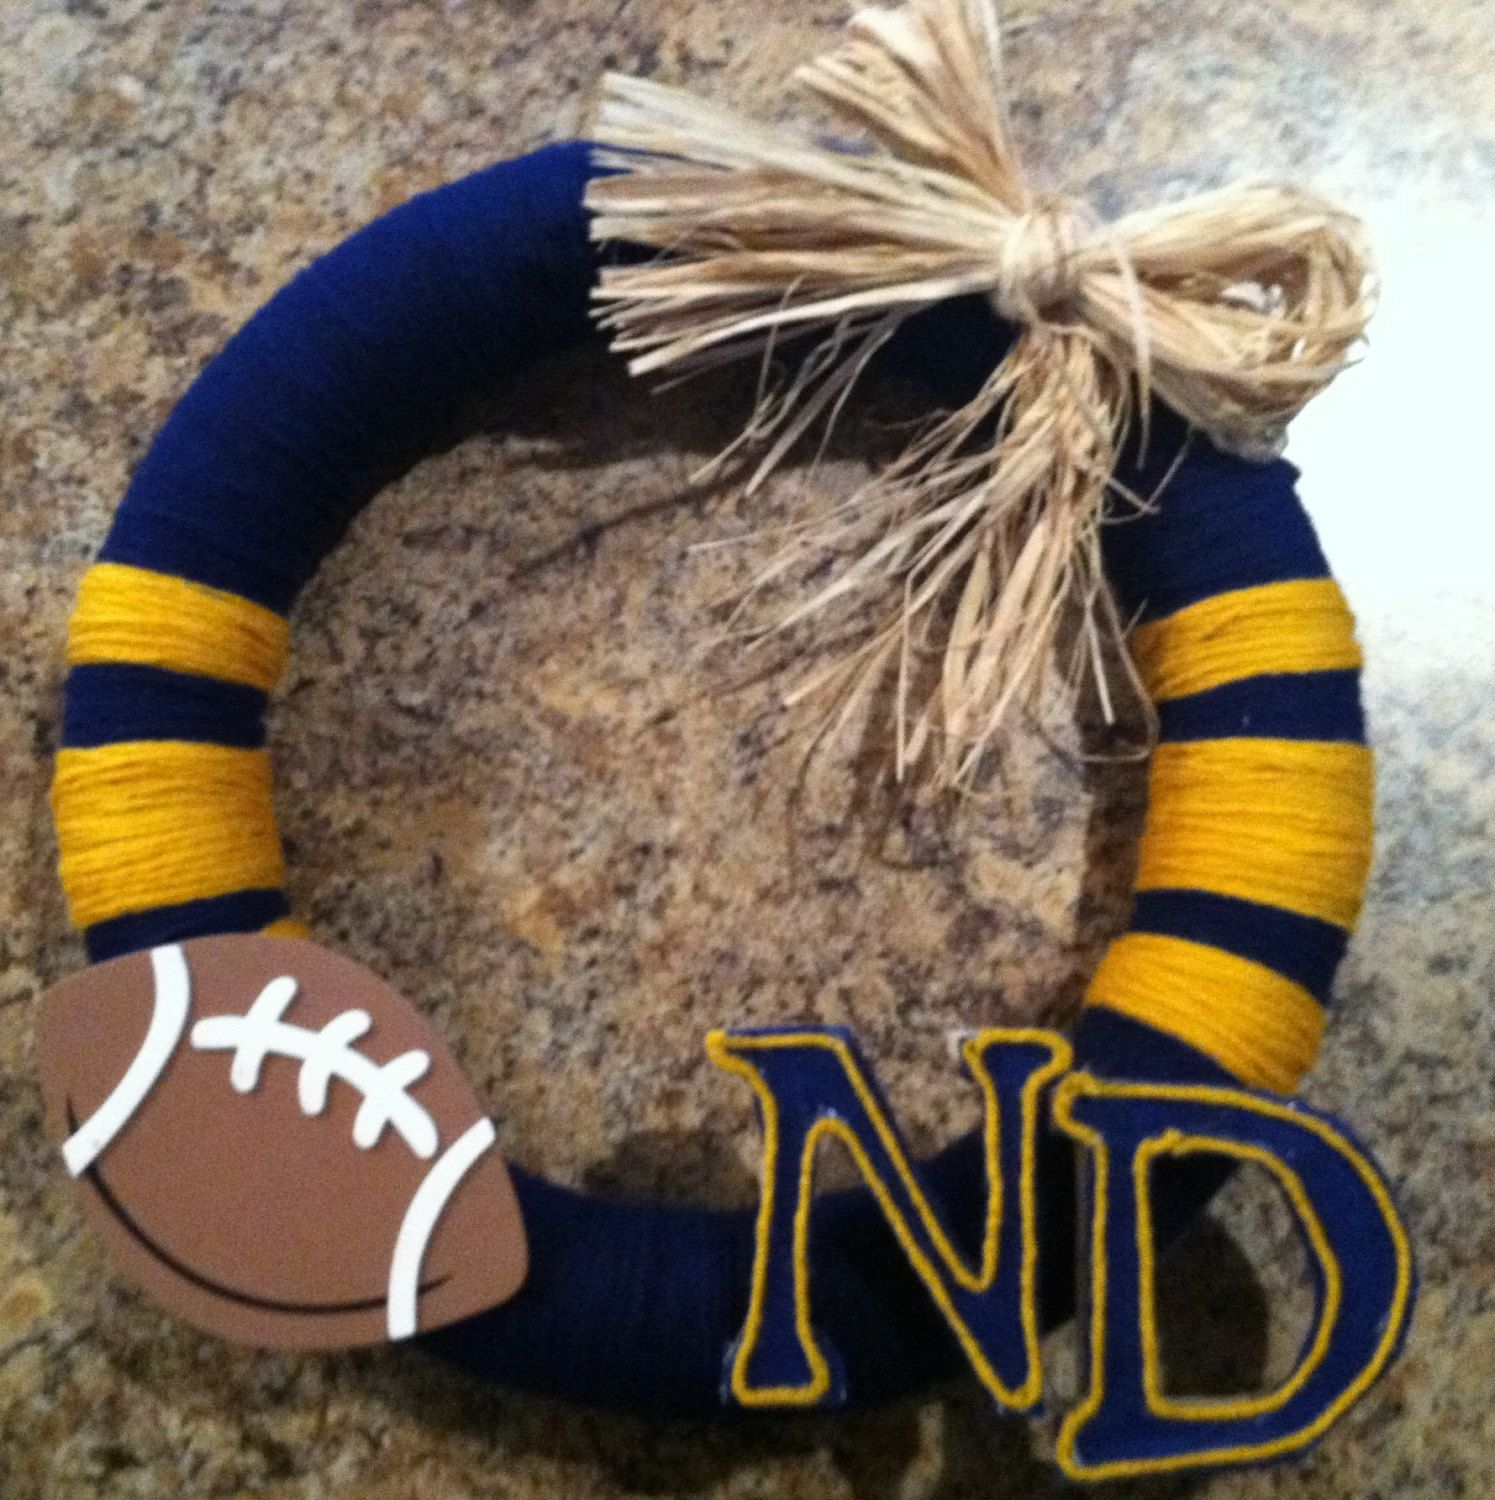 Sports wreath in your favorite team's colors Sports